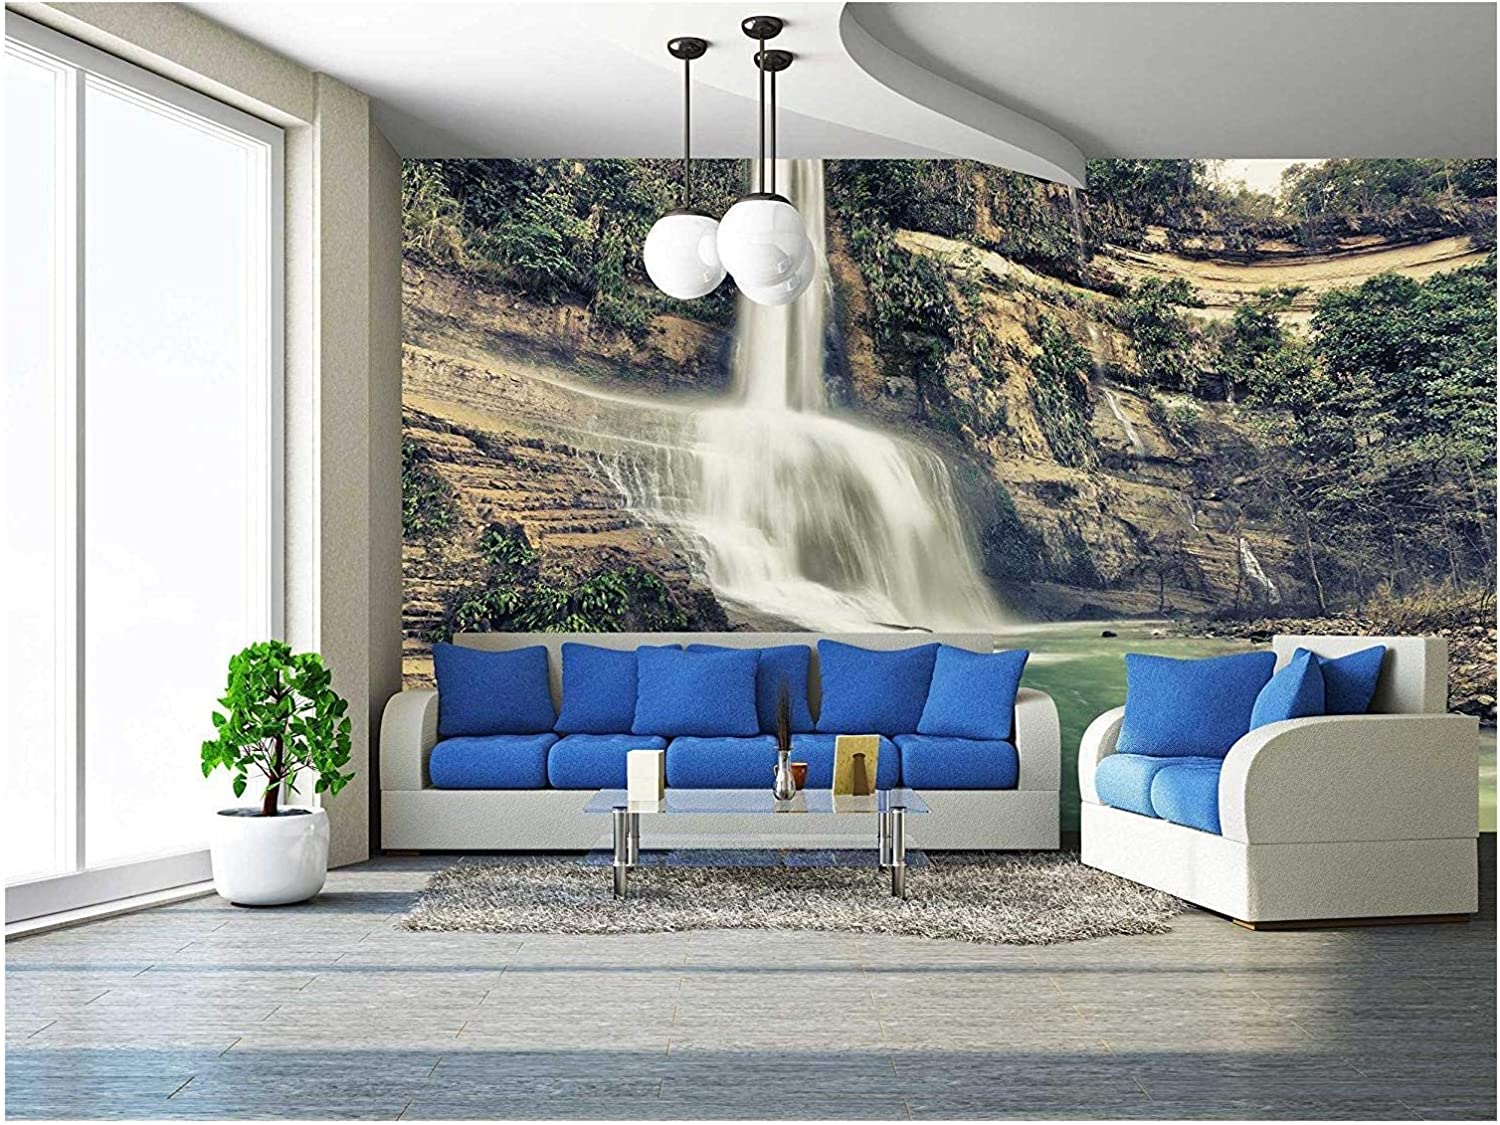 Wall26 Beautiful Waterfall Vintage Style Bohol Philippines Removable Wall Mural Self Adhesive Large Wallpaper 66x96 Inches Amazon Com